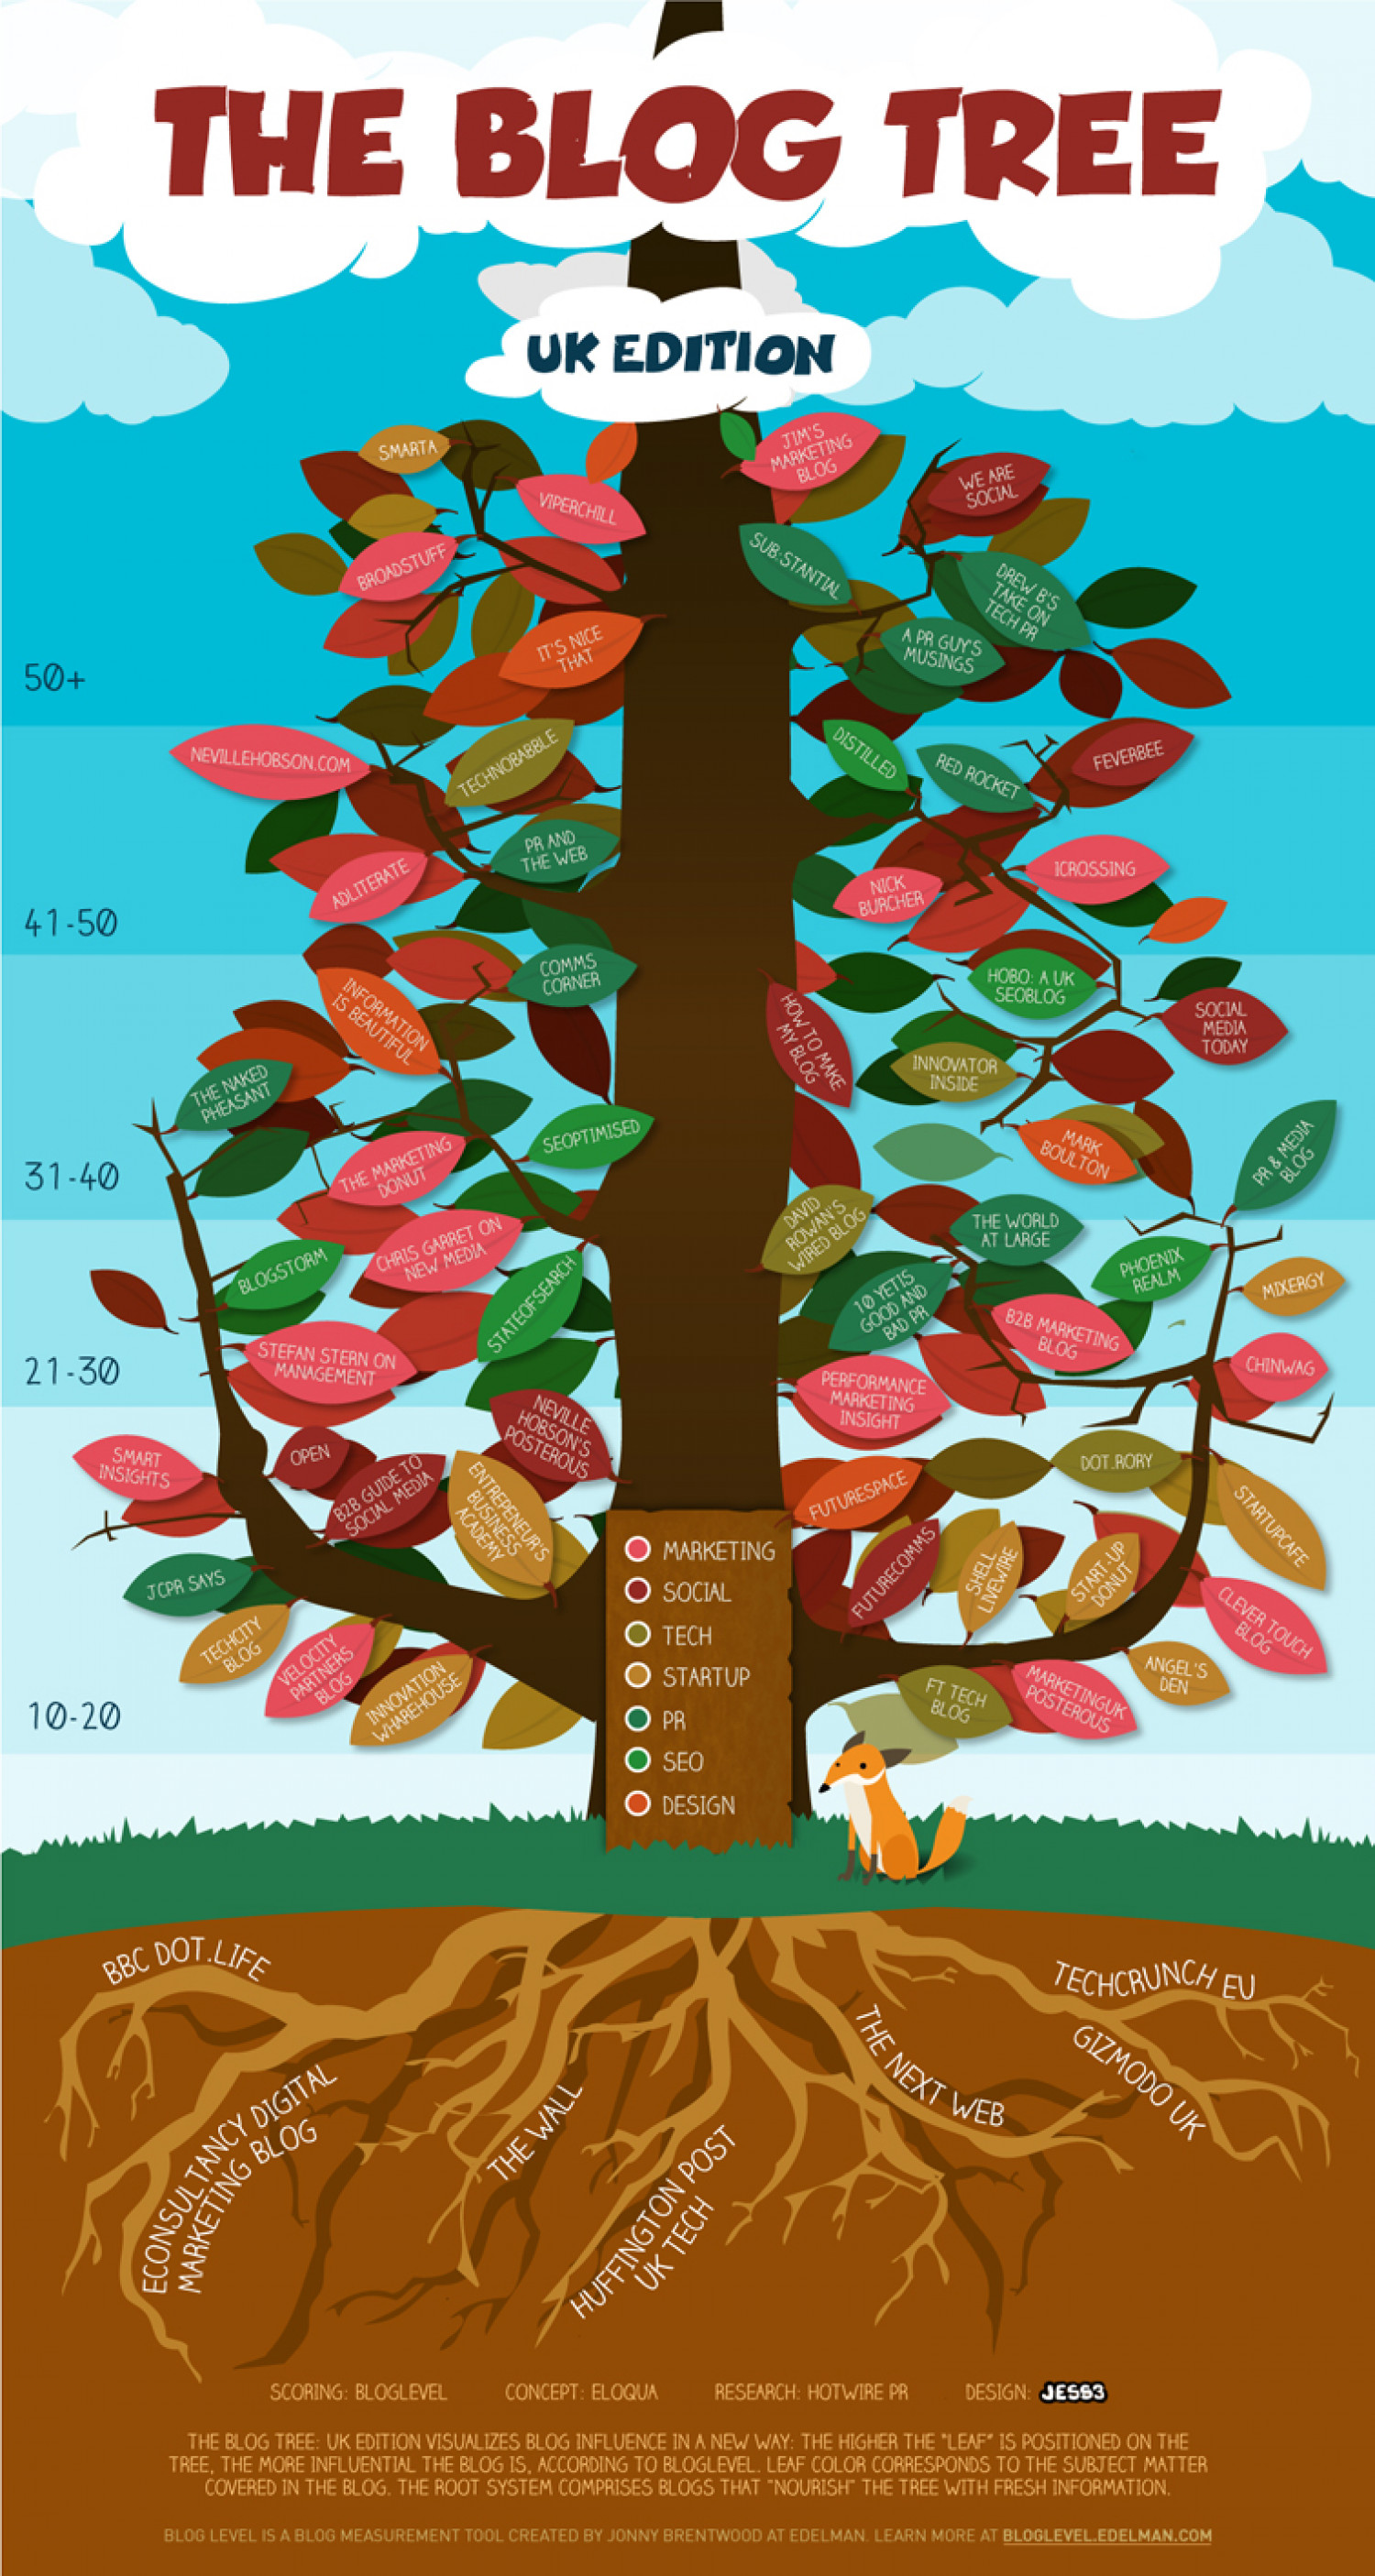 The Blog Tree: UK Edition Infographic